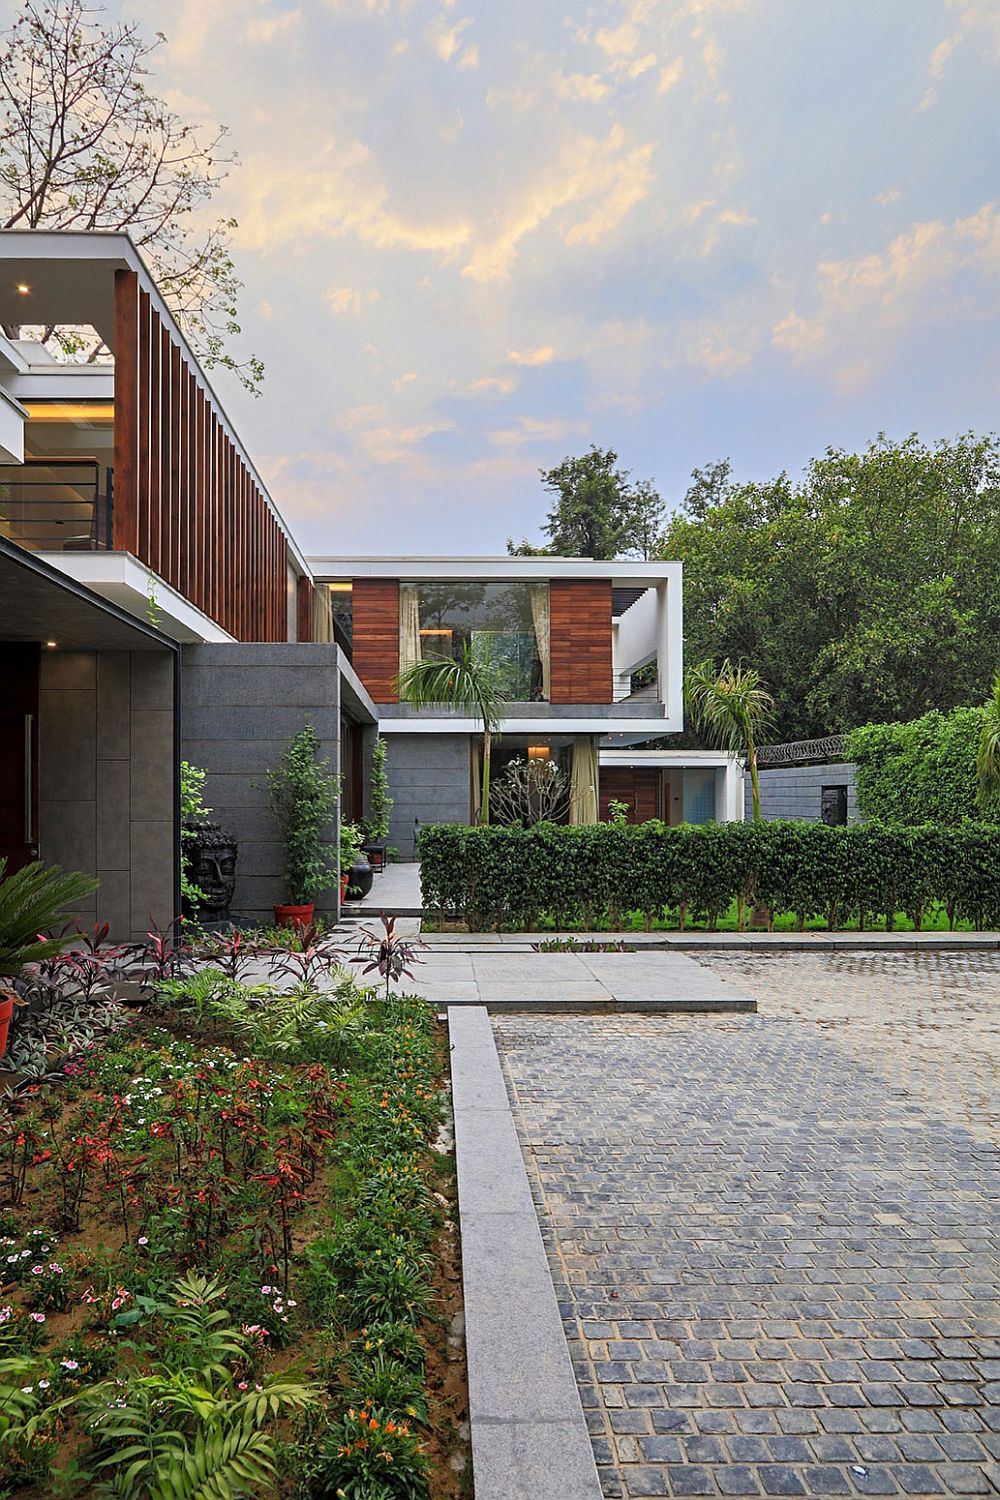 Clean lines and simple design give the expansive home a modern vibe